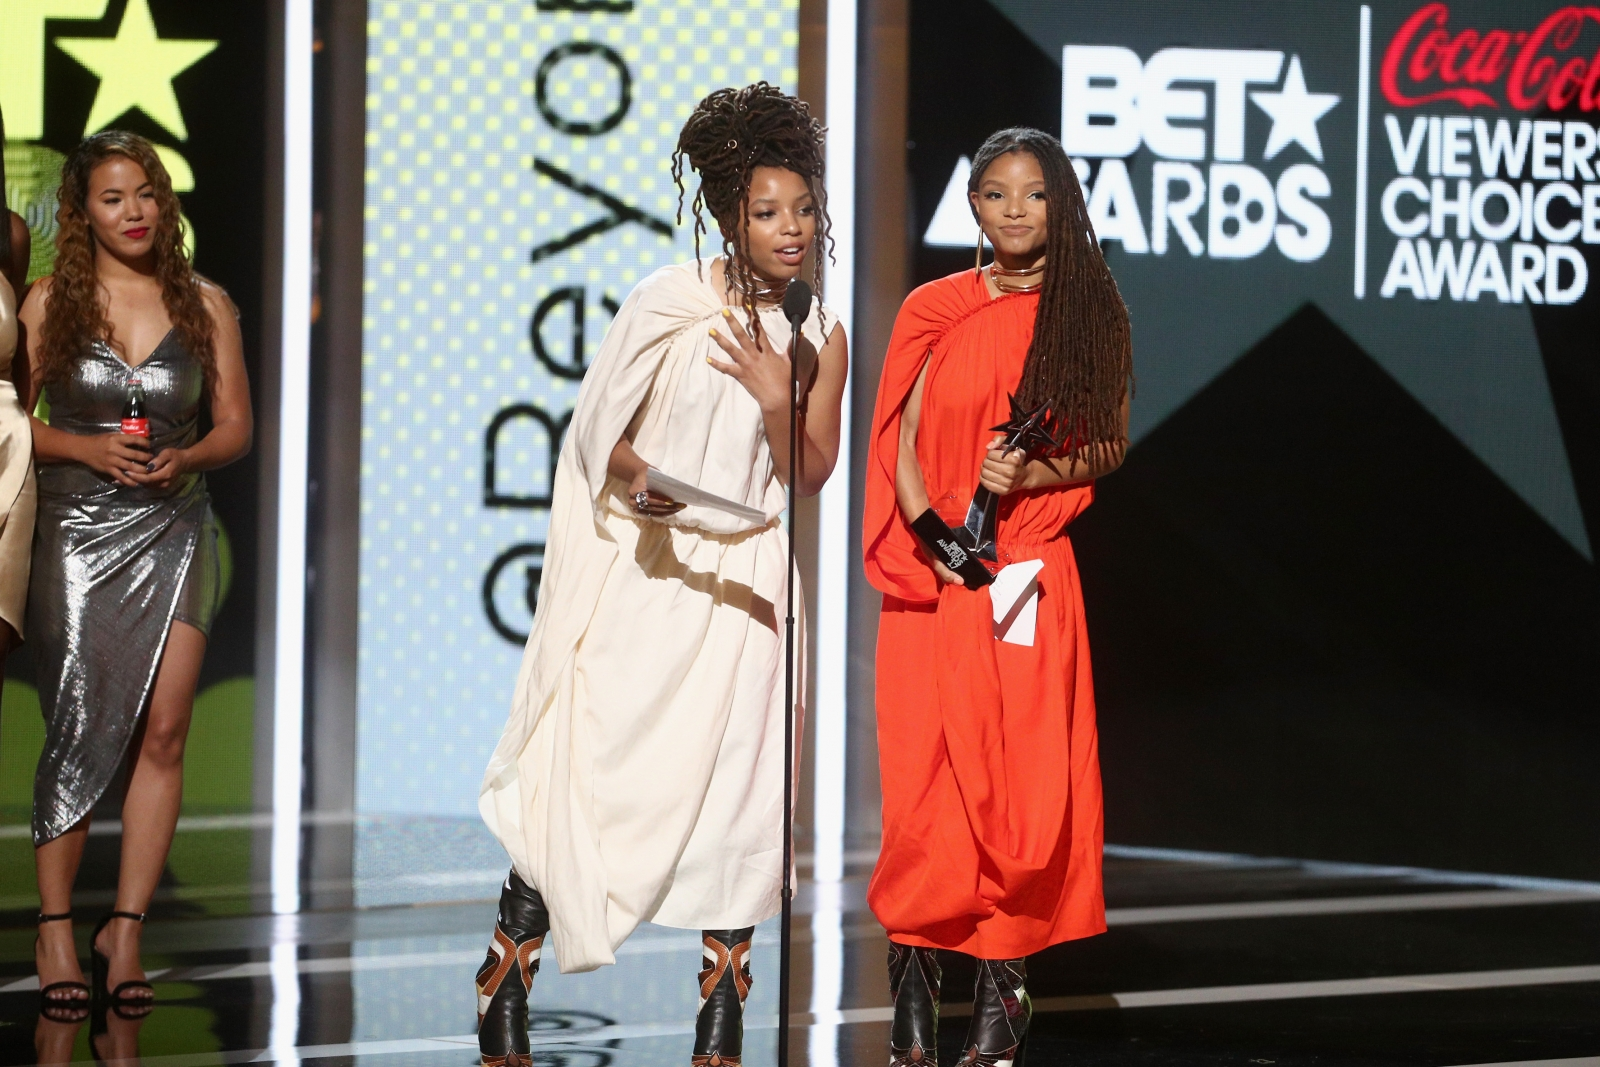 Bet viewers choice contest